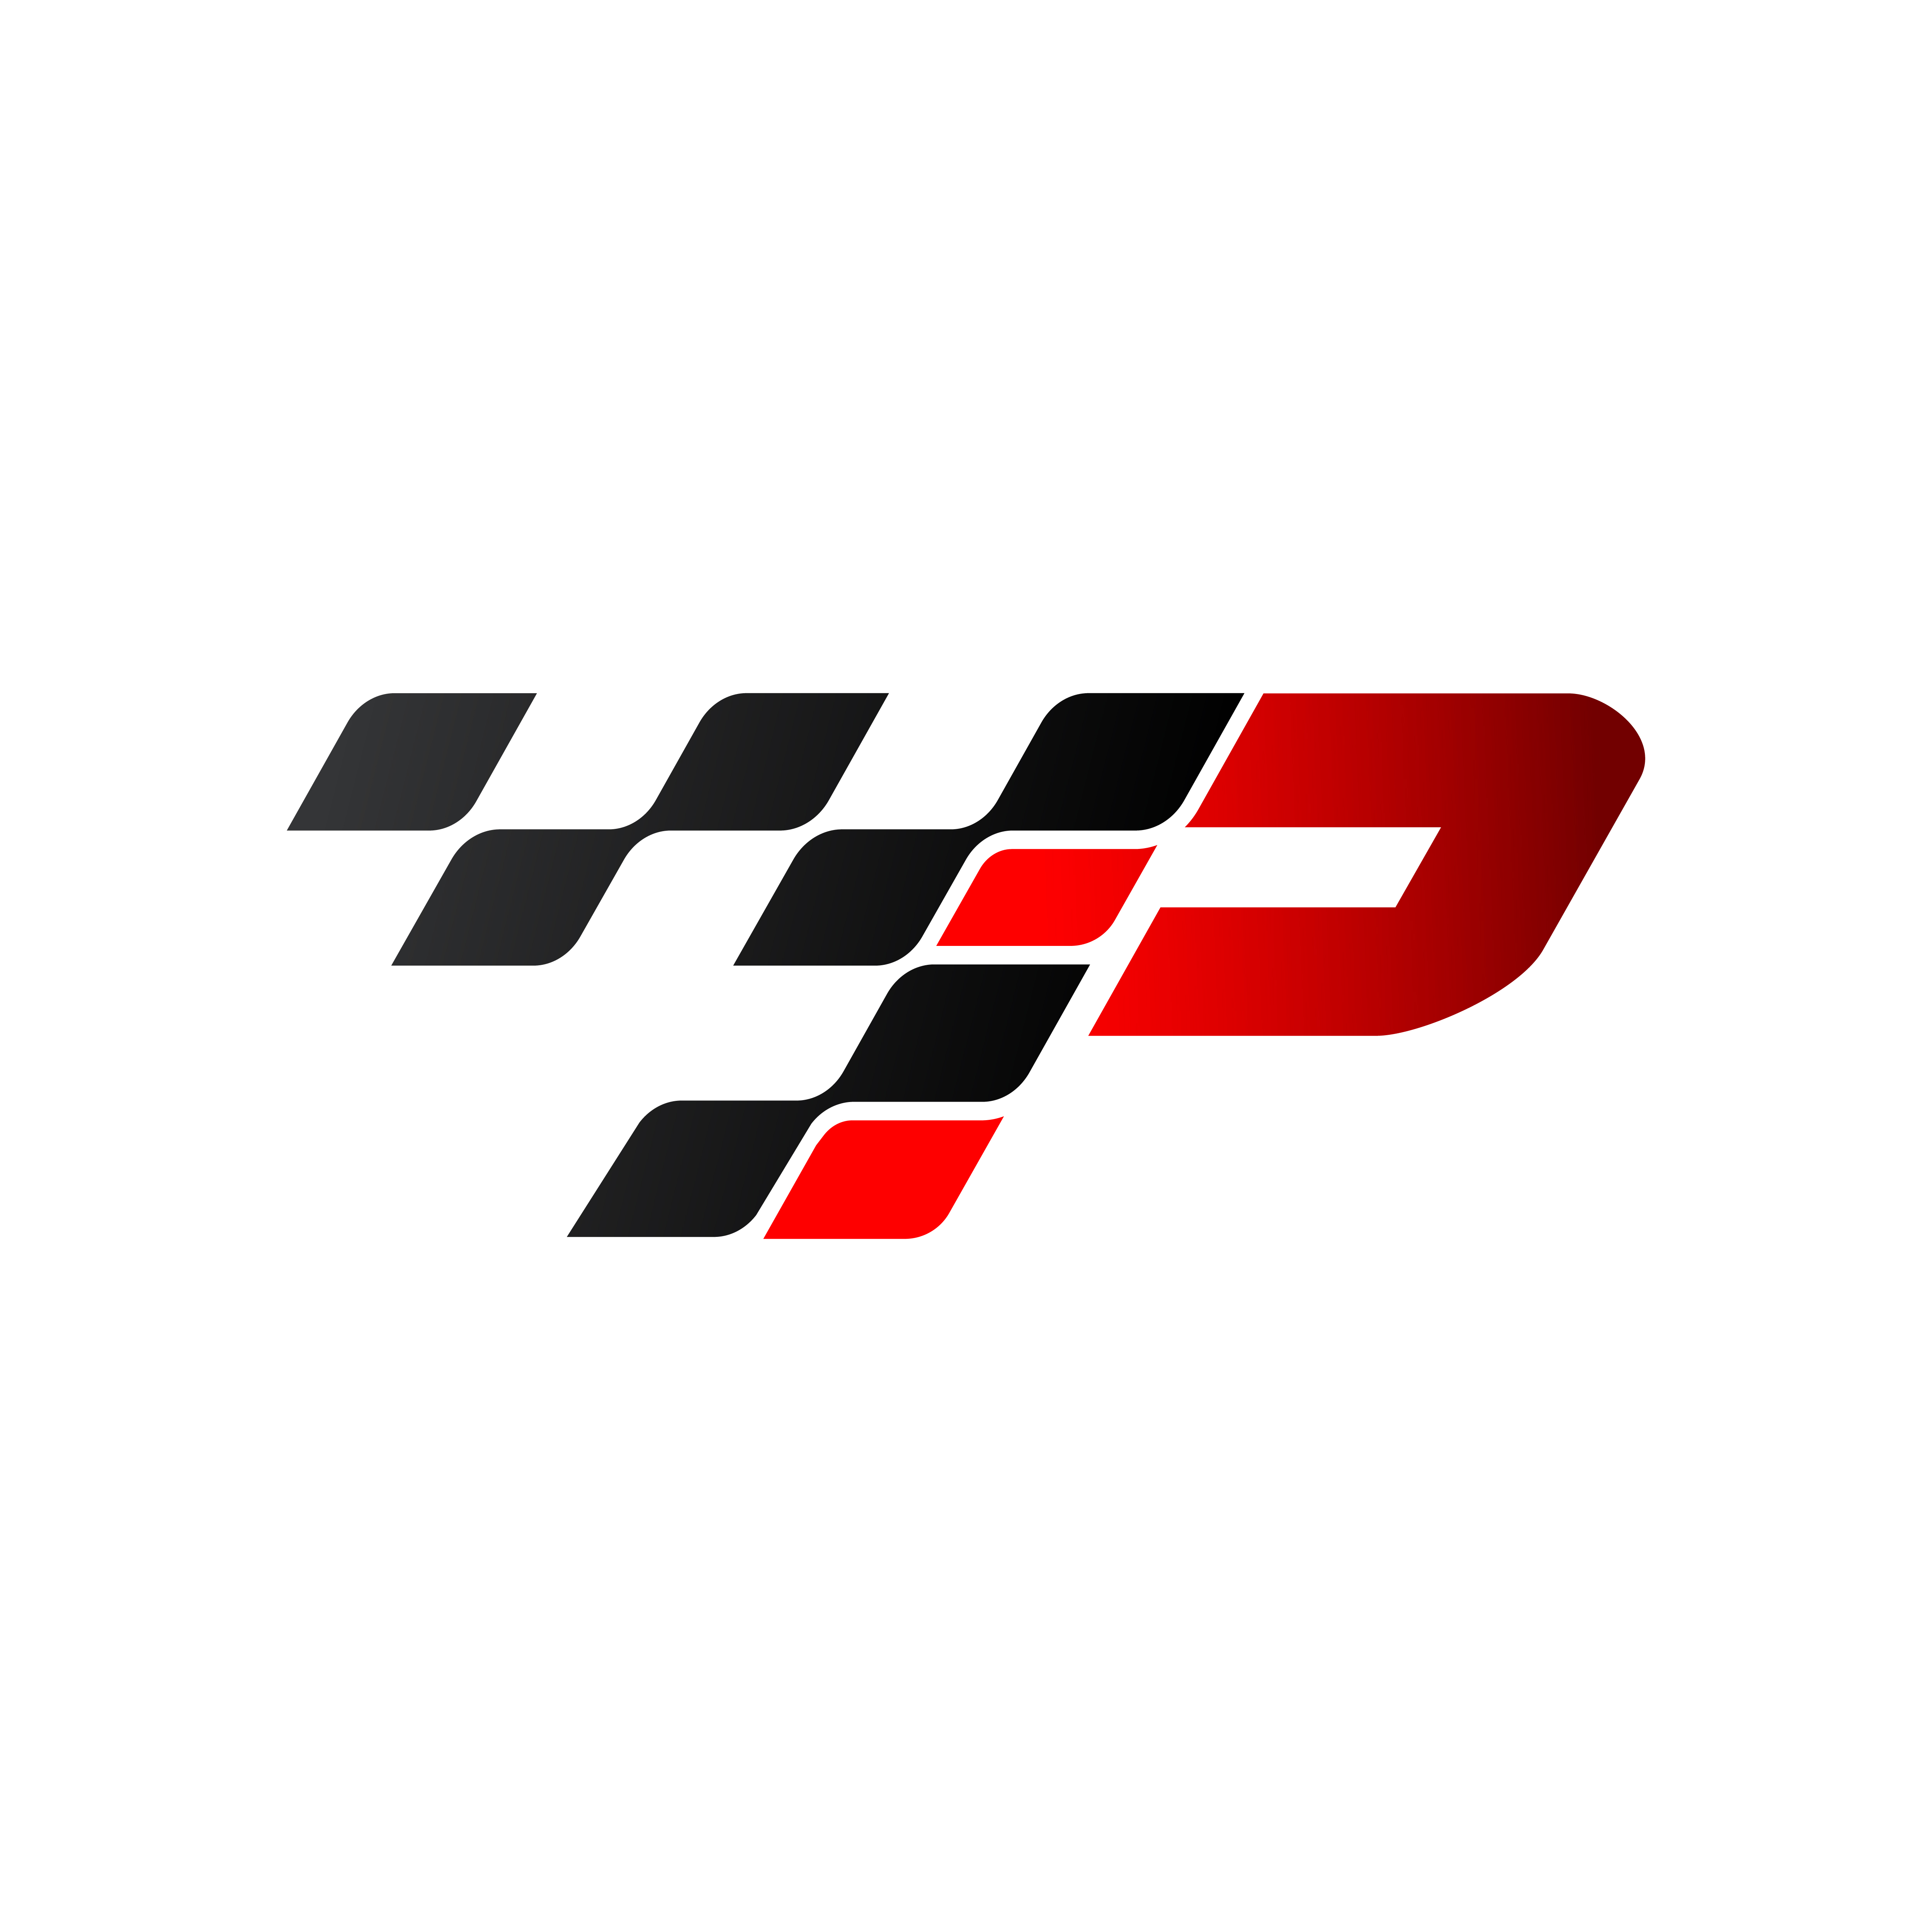 Corporate Logo With Geometric Shapes: Letter P With Racing Flag Logo 587826